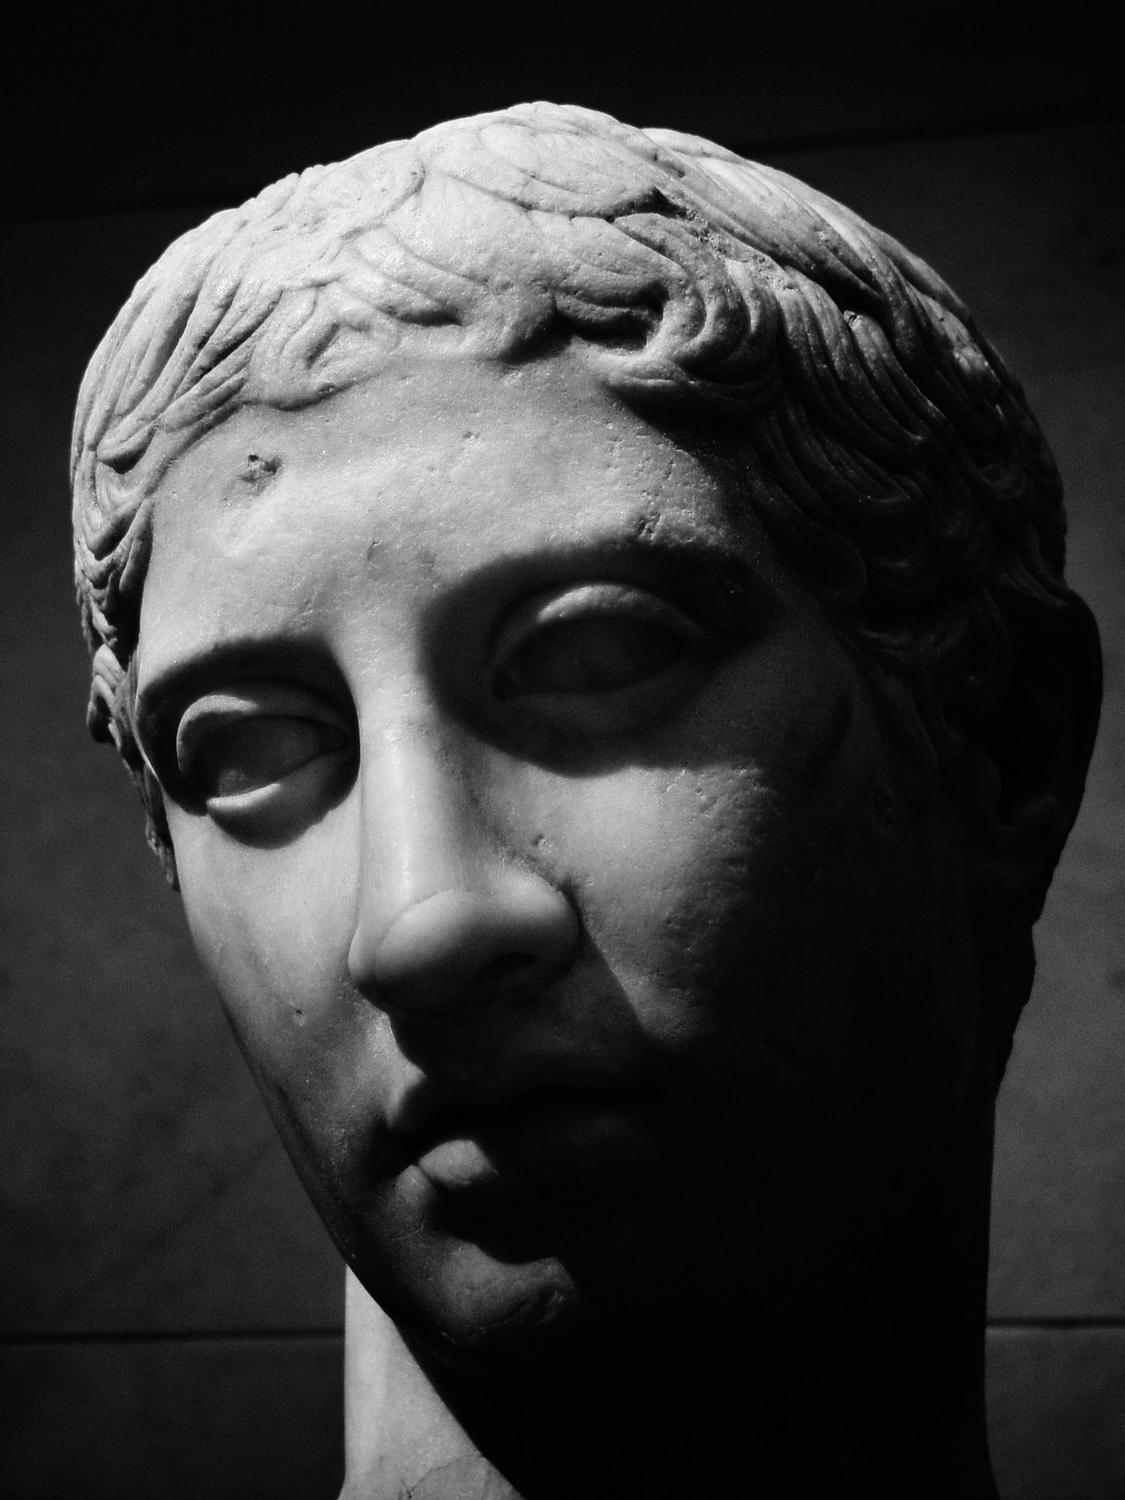 Greek statue # 2 - - Here, I've made it black and white and bumped the contrast. - Sony DMC-F707 - infrared - Metropolitan Museum New York City - Tony Karp, design, art, photography, techno-impressionist, techno-impressionism, aerial photography , drone , drones , dji , mavic pro , video , 3D printing - Books -